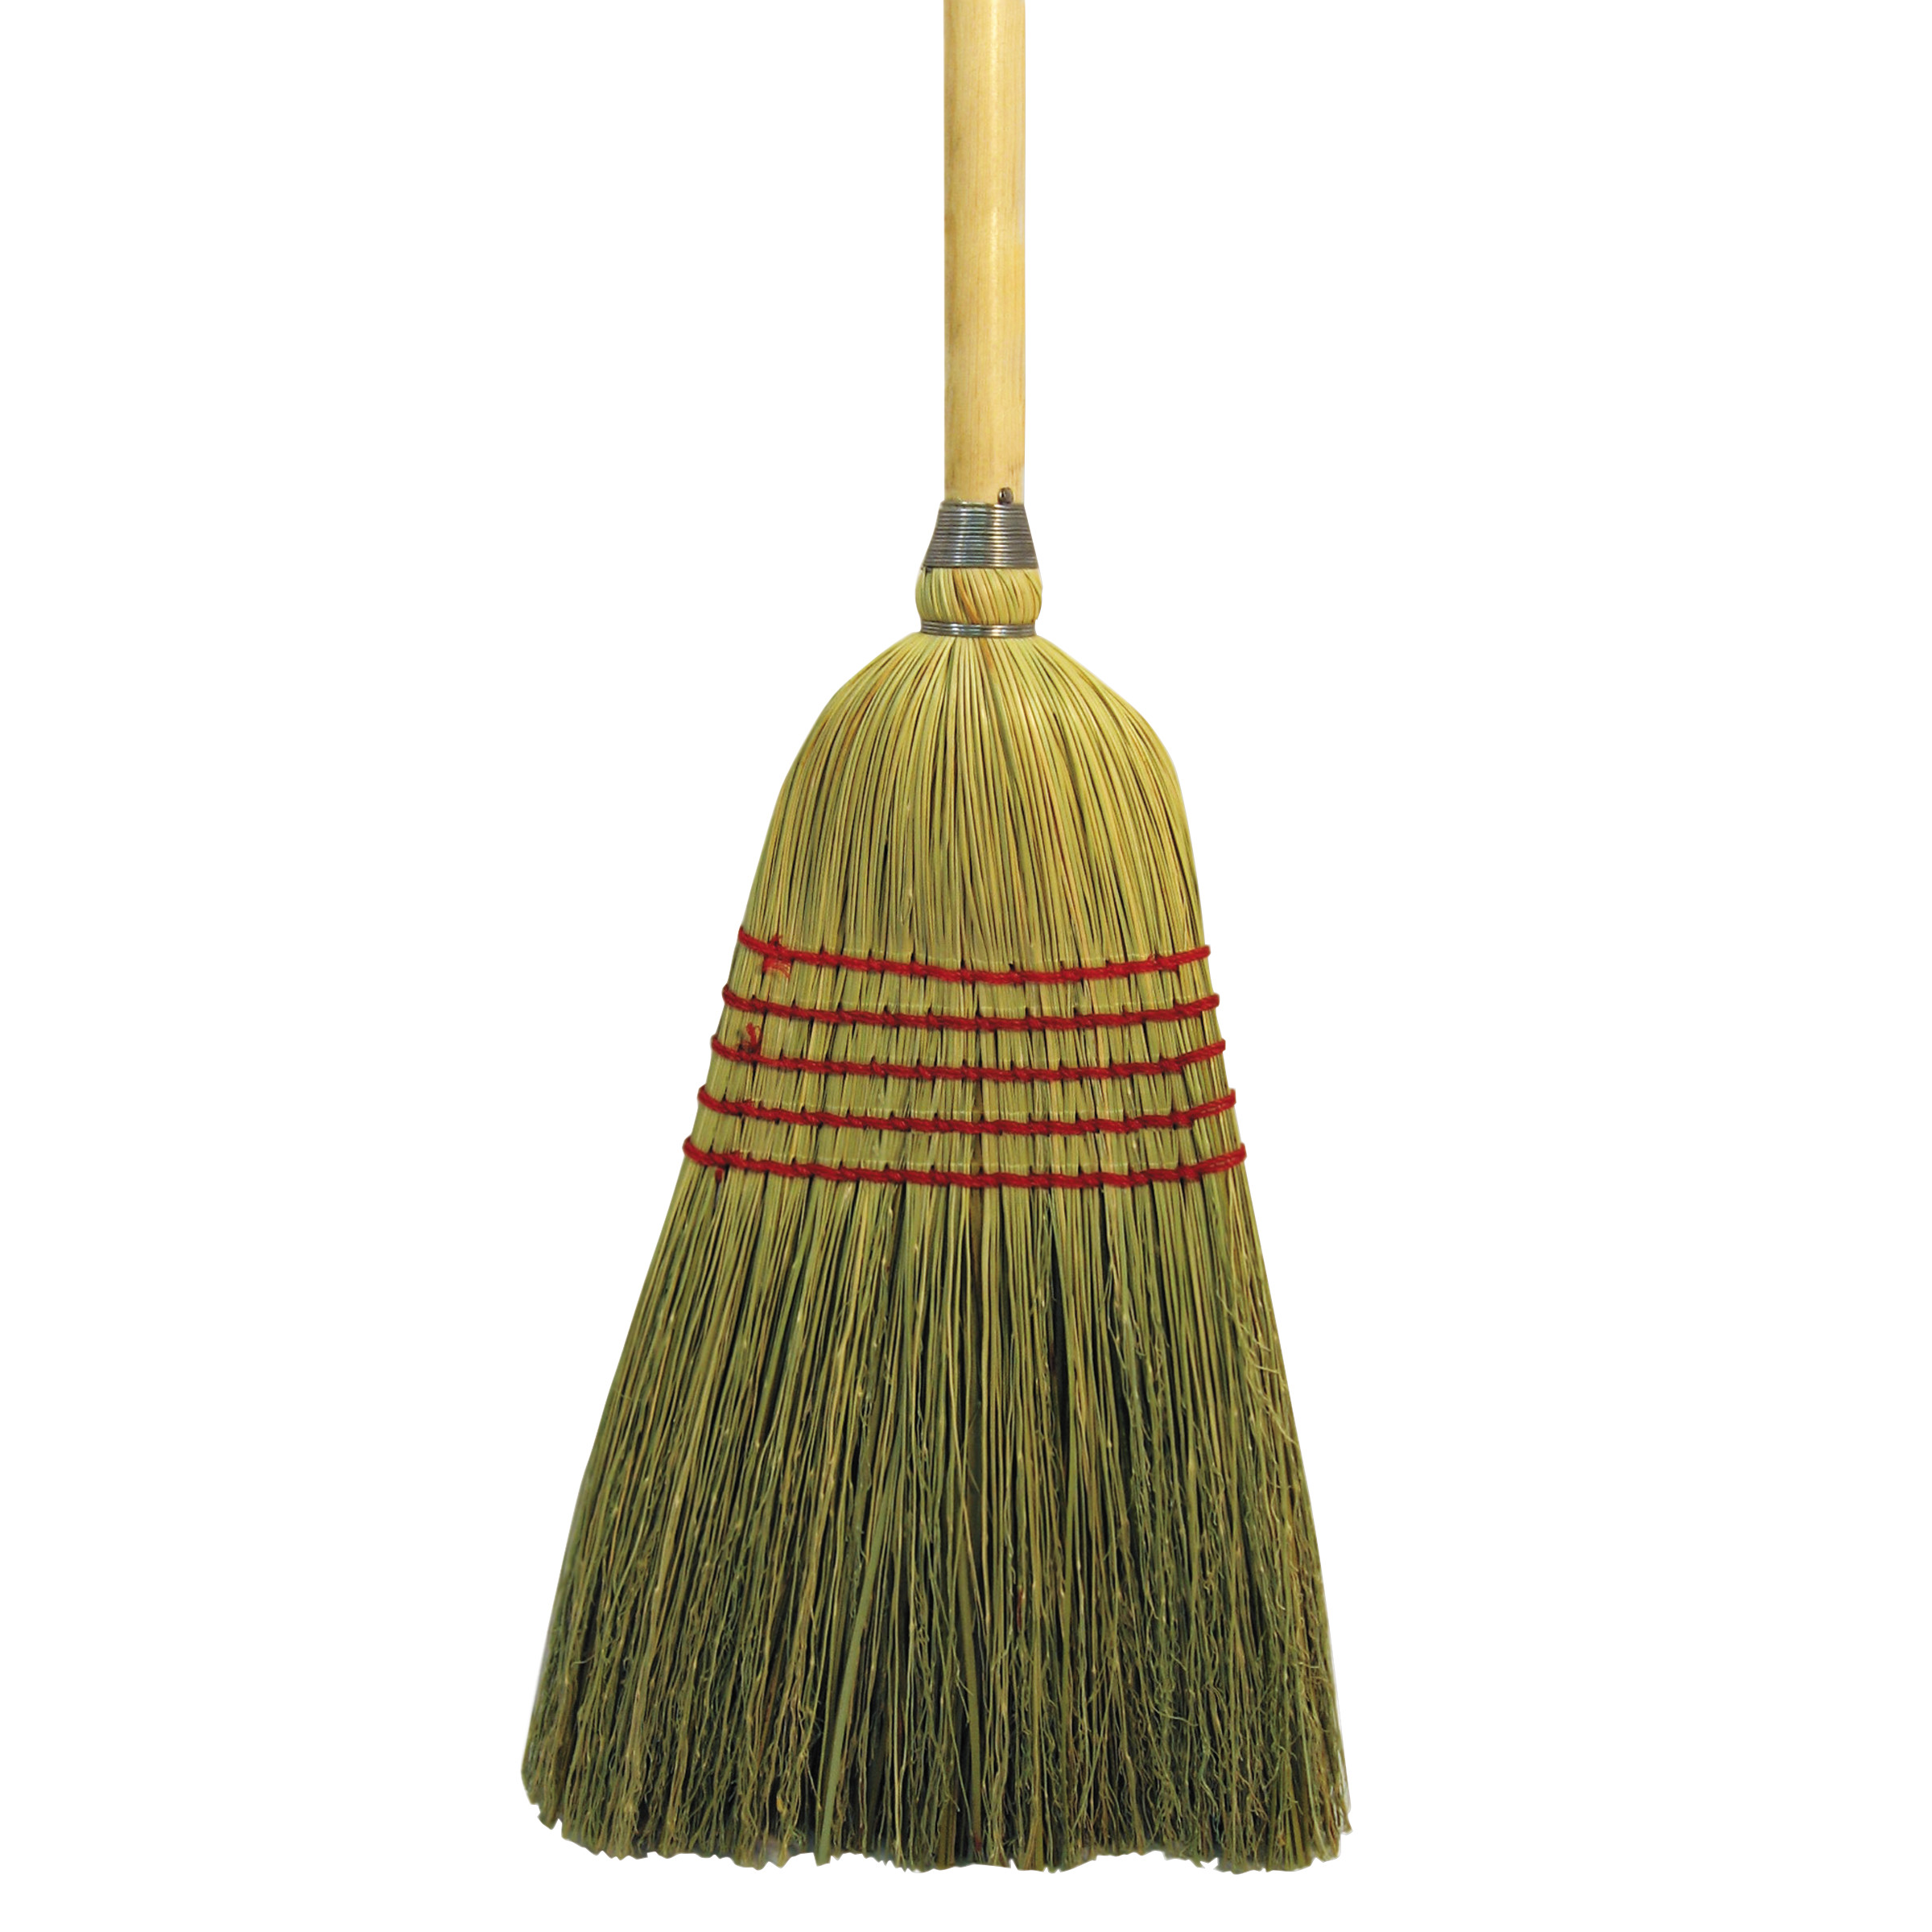 "Boardwalk Parlor Broom, Yucca/Corn Fiber Bristles, 55.5"", Wood Handle, Natural -BWK926YEA"